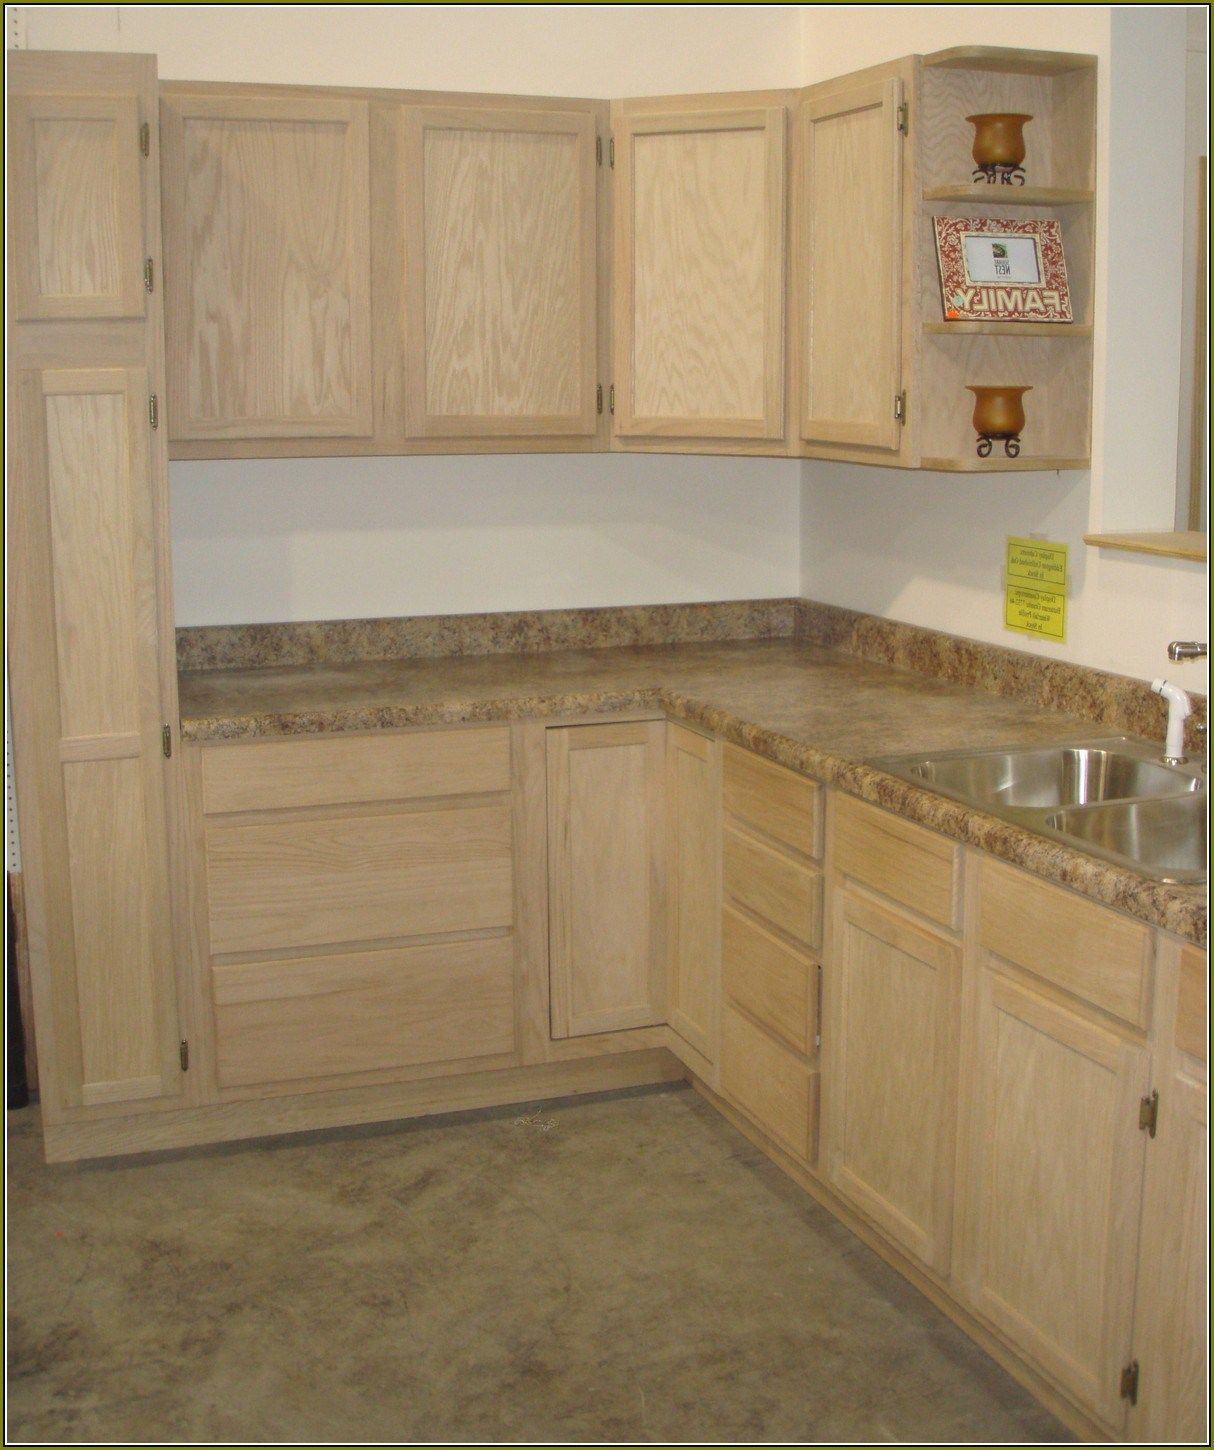 Lowes lower kitchen cabinets - Home Improvements Refference Unfinished Pine Cabinets Home Depot Kitchen Cabinets Assemble Home Depot Lowes Kitchen Cabinets